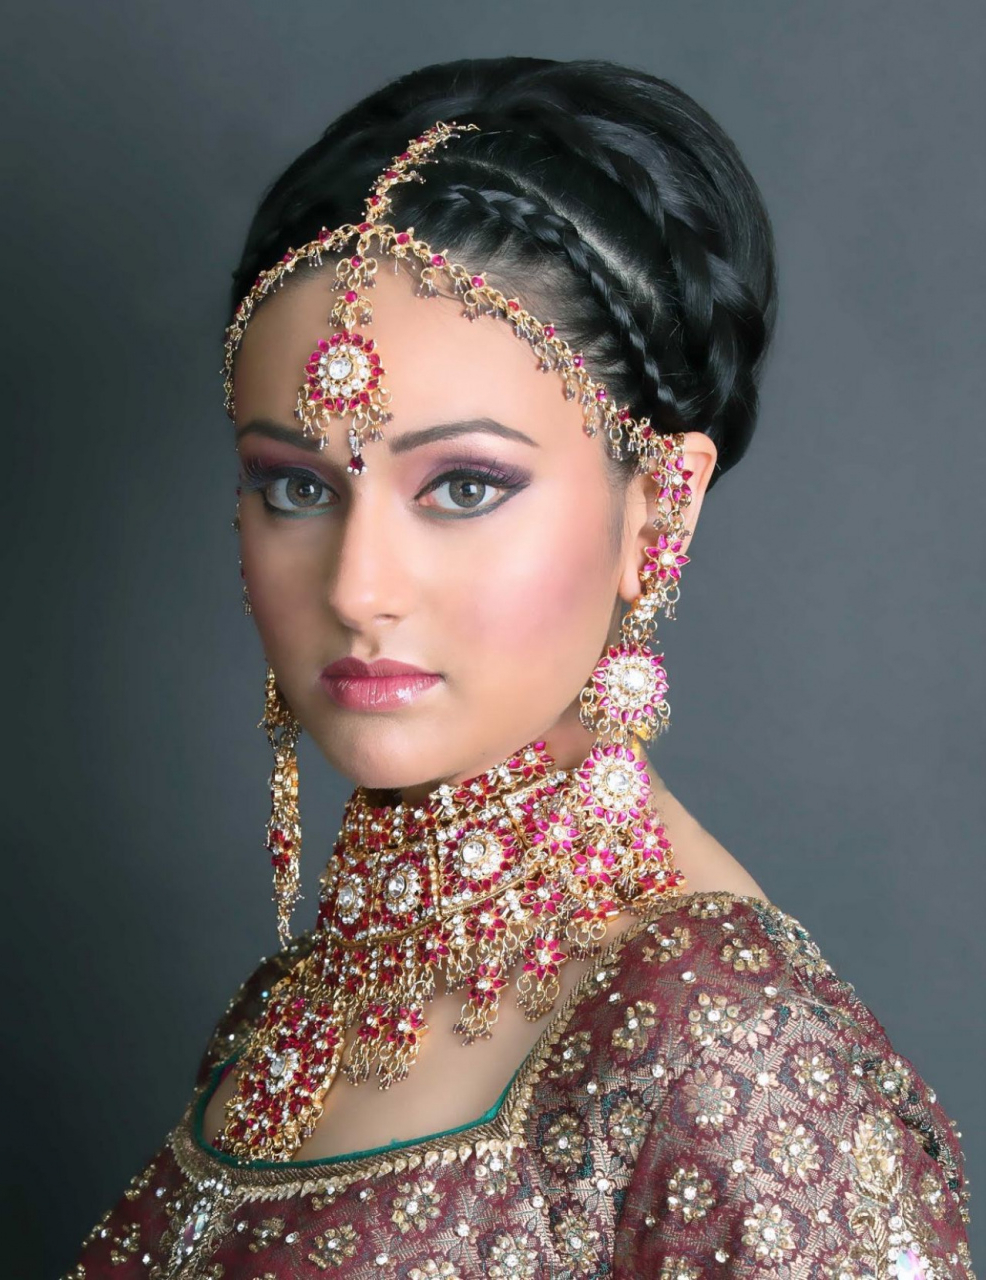 50 Indian Bridal Hairstyles For Short Hair Luxury 20 Indian Wedding For Short Hairstyles For Indian Wedding (View 16 of 25)